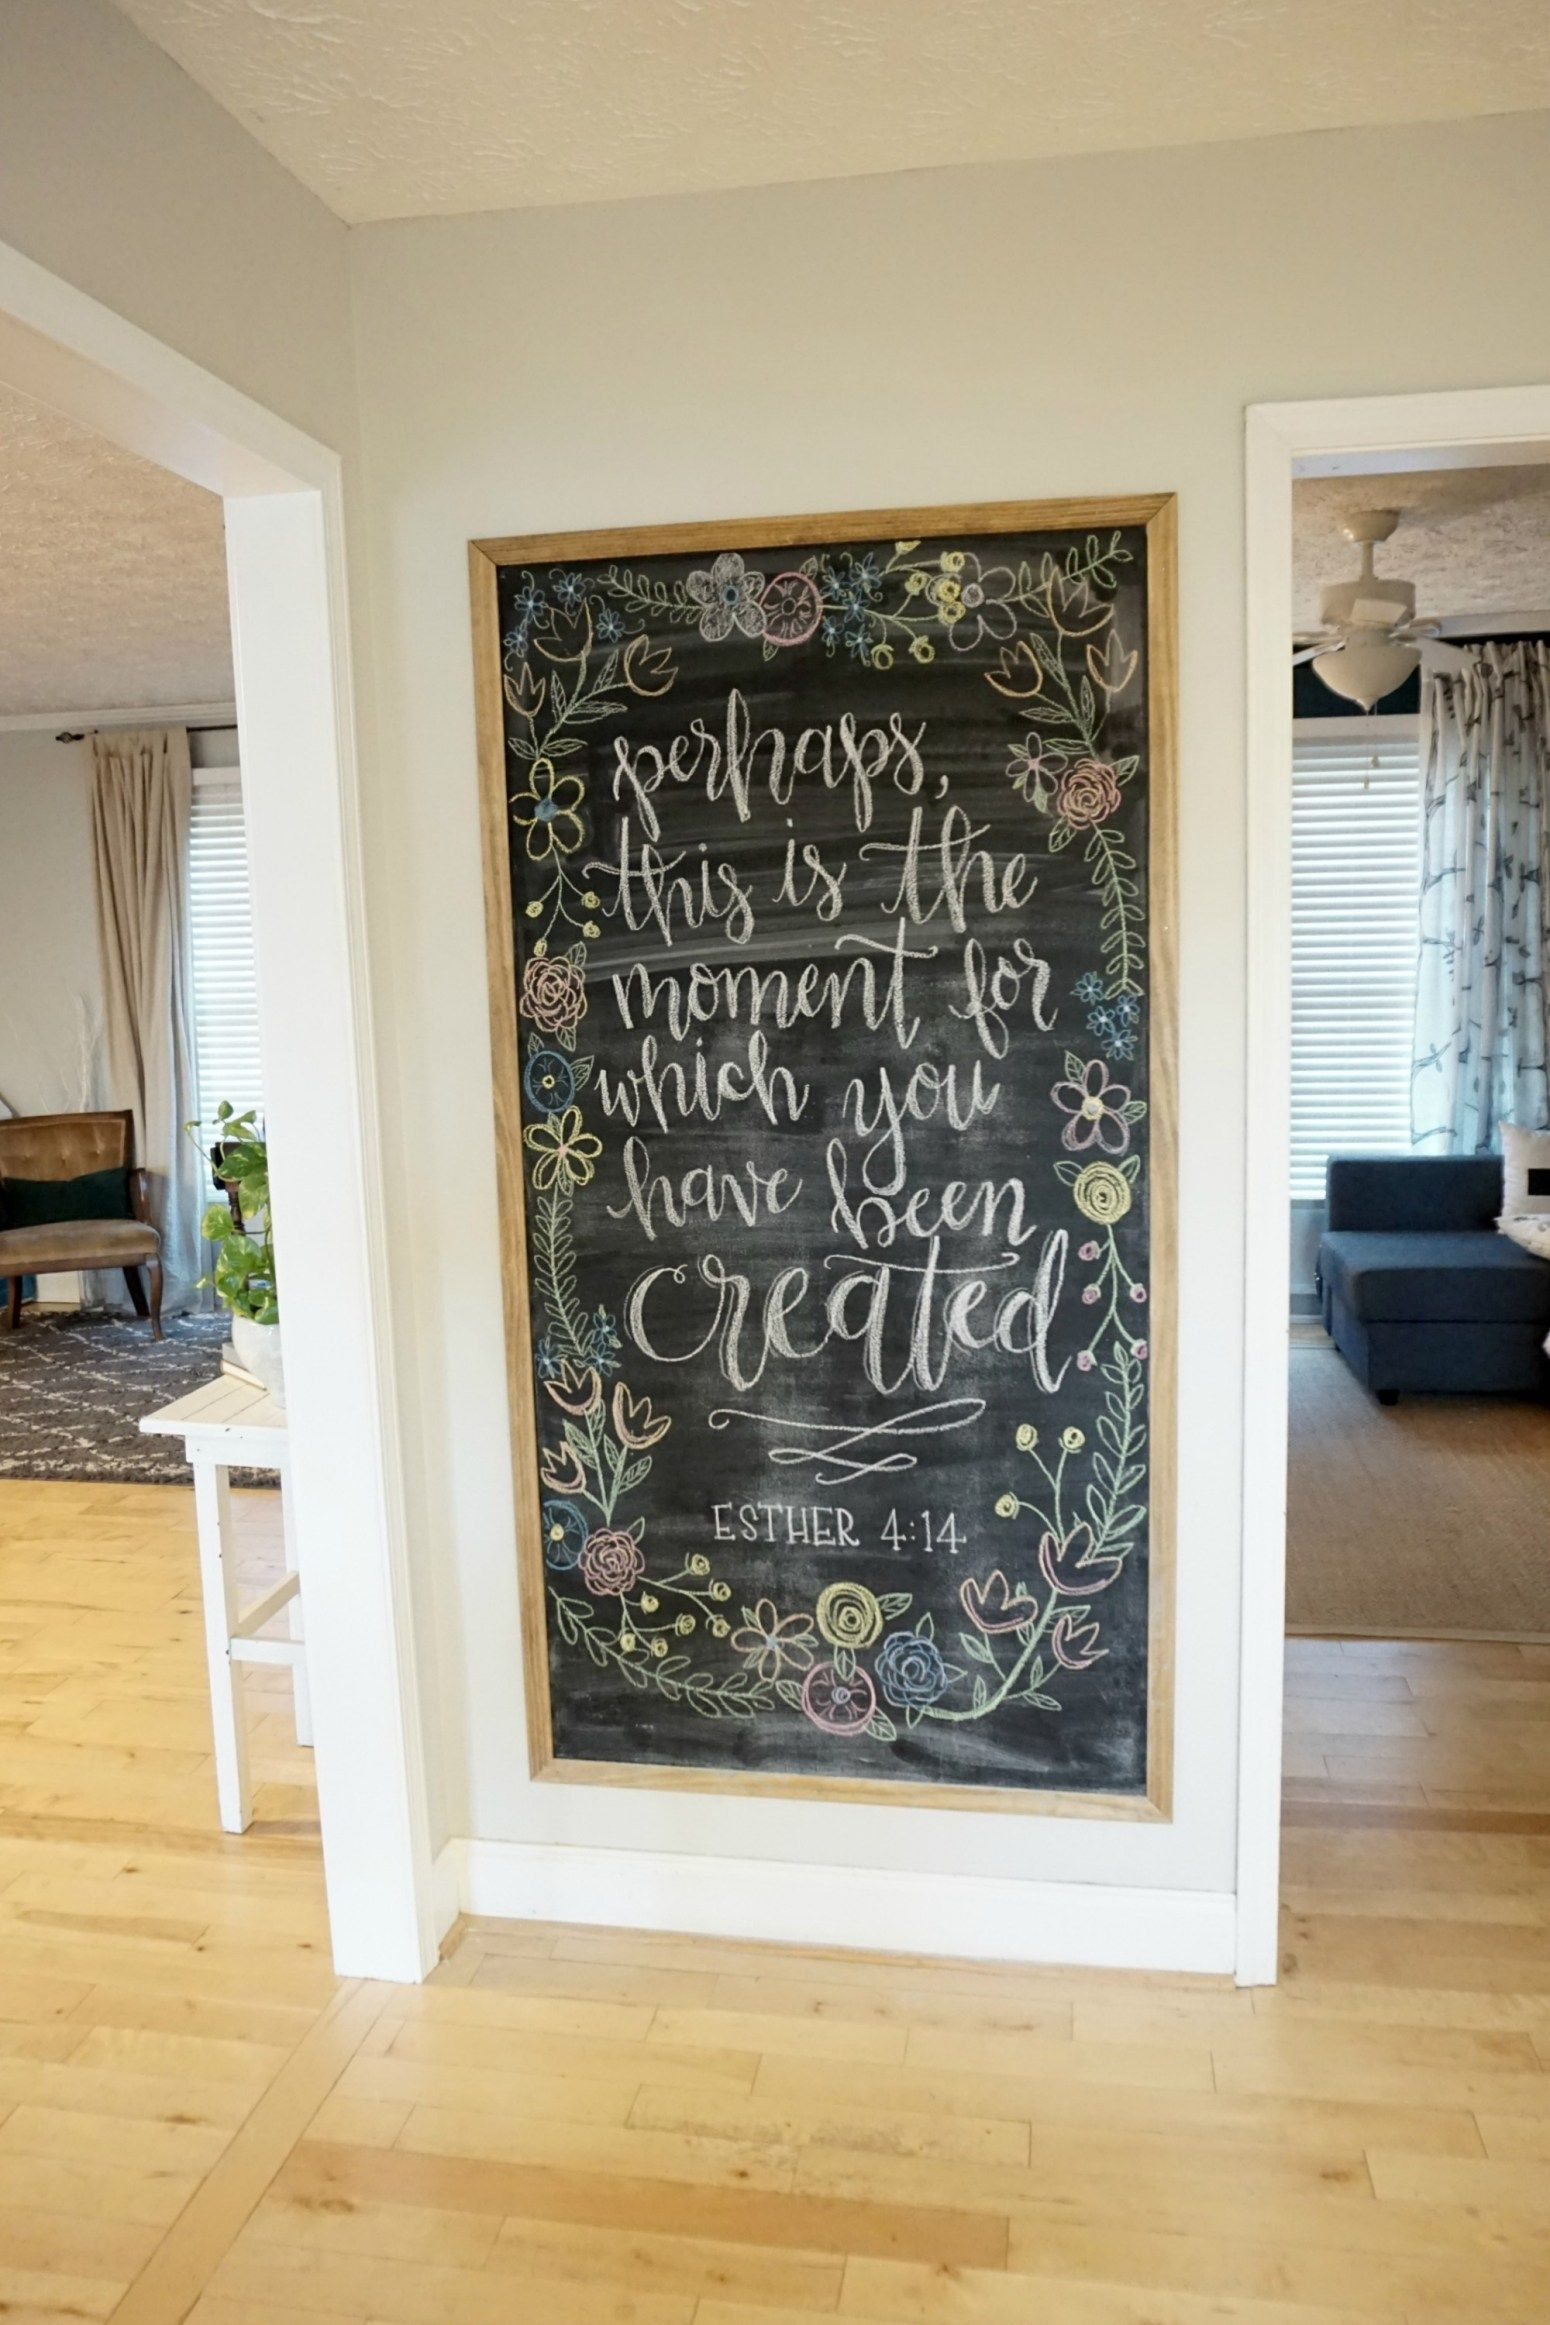 12 affordable ideas for large wall decor chalkboard inspirations home decor diy chalkboard. Black Bedroom Furniture Sets. Home Design Ideas